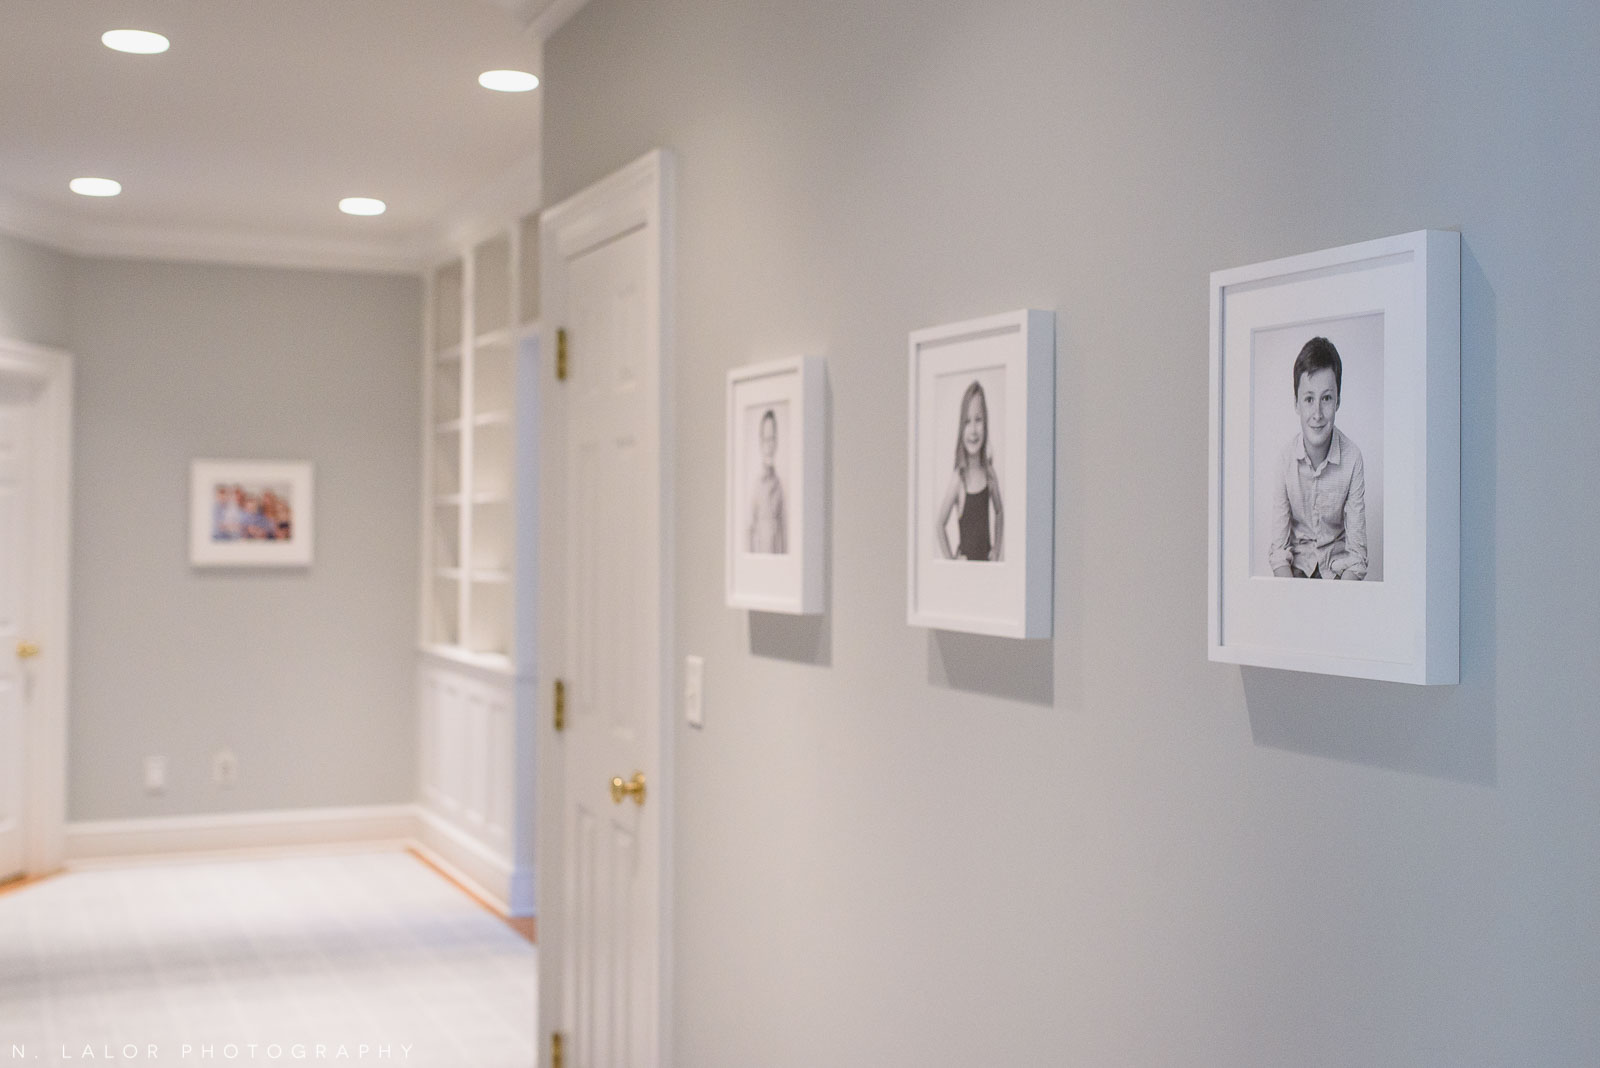 Image of a home interior with frames on the wall. Portrait by N. Lalor Photography, Studio located in Greenwich Connecticut.